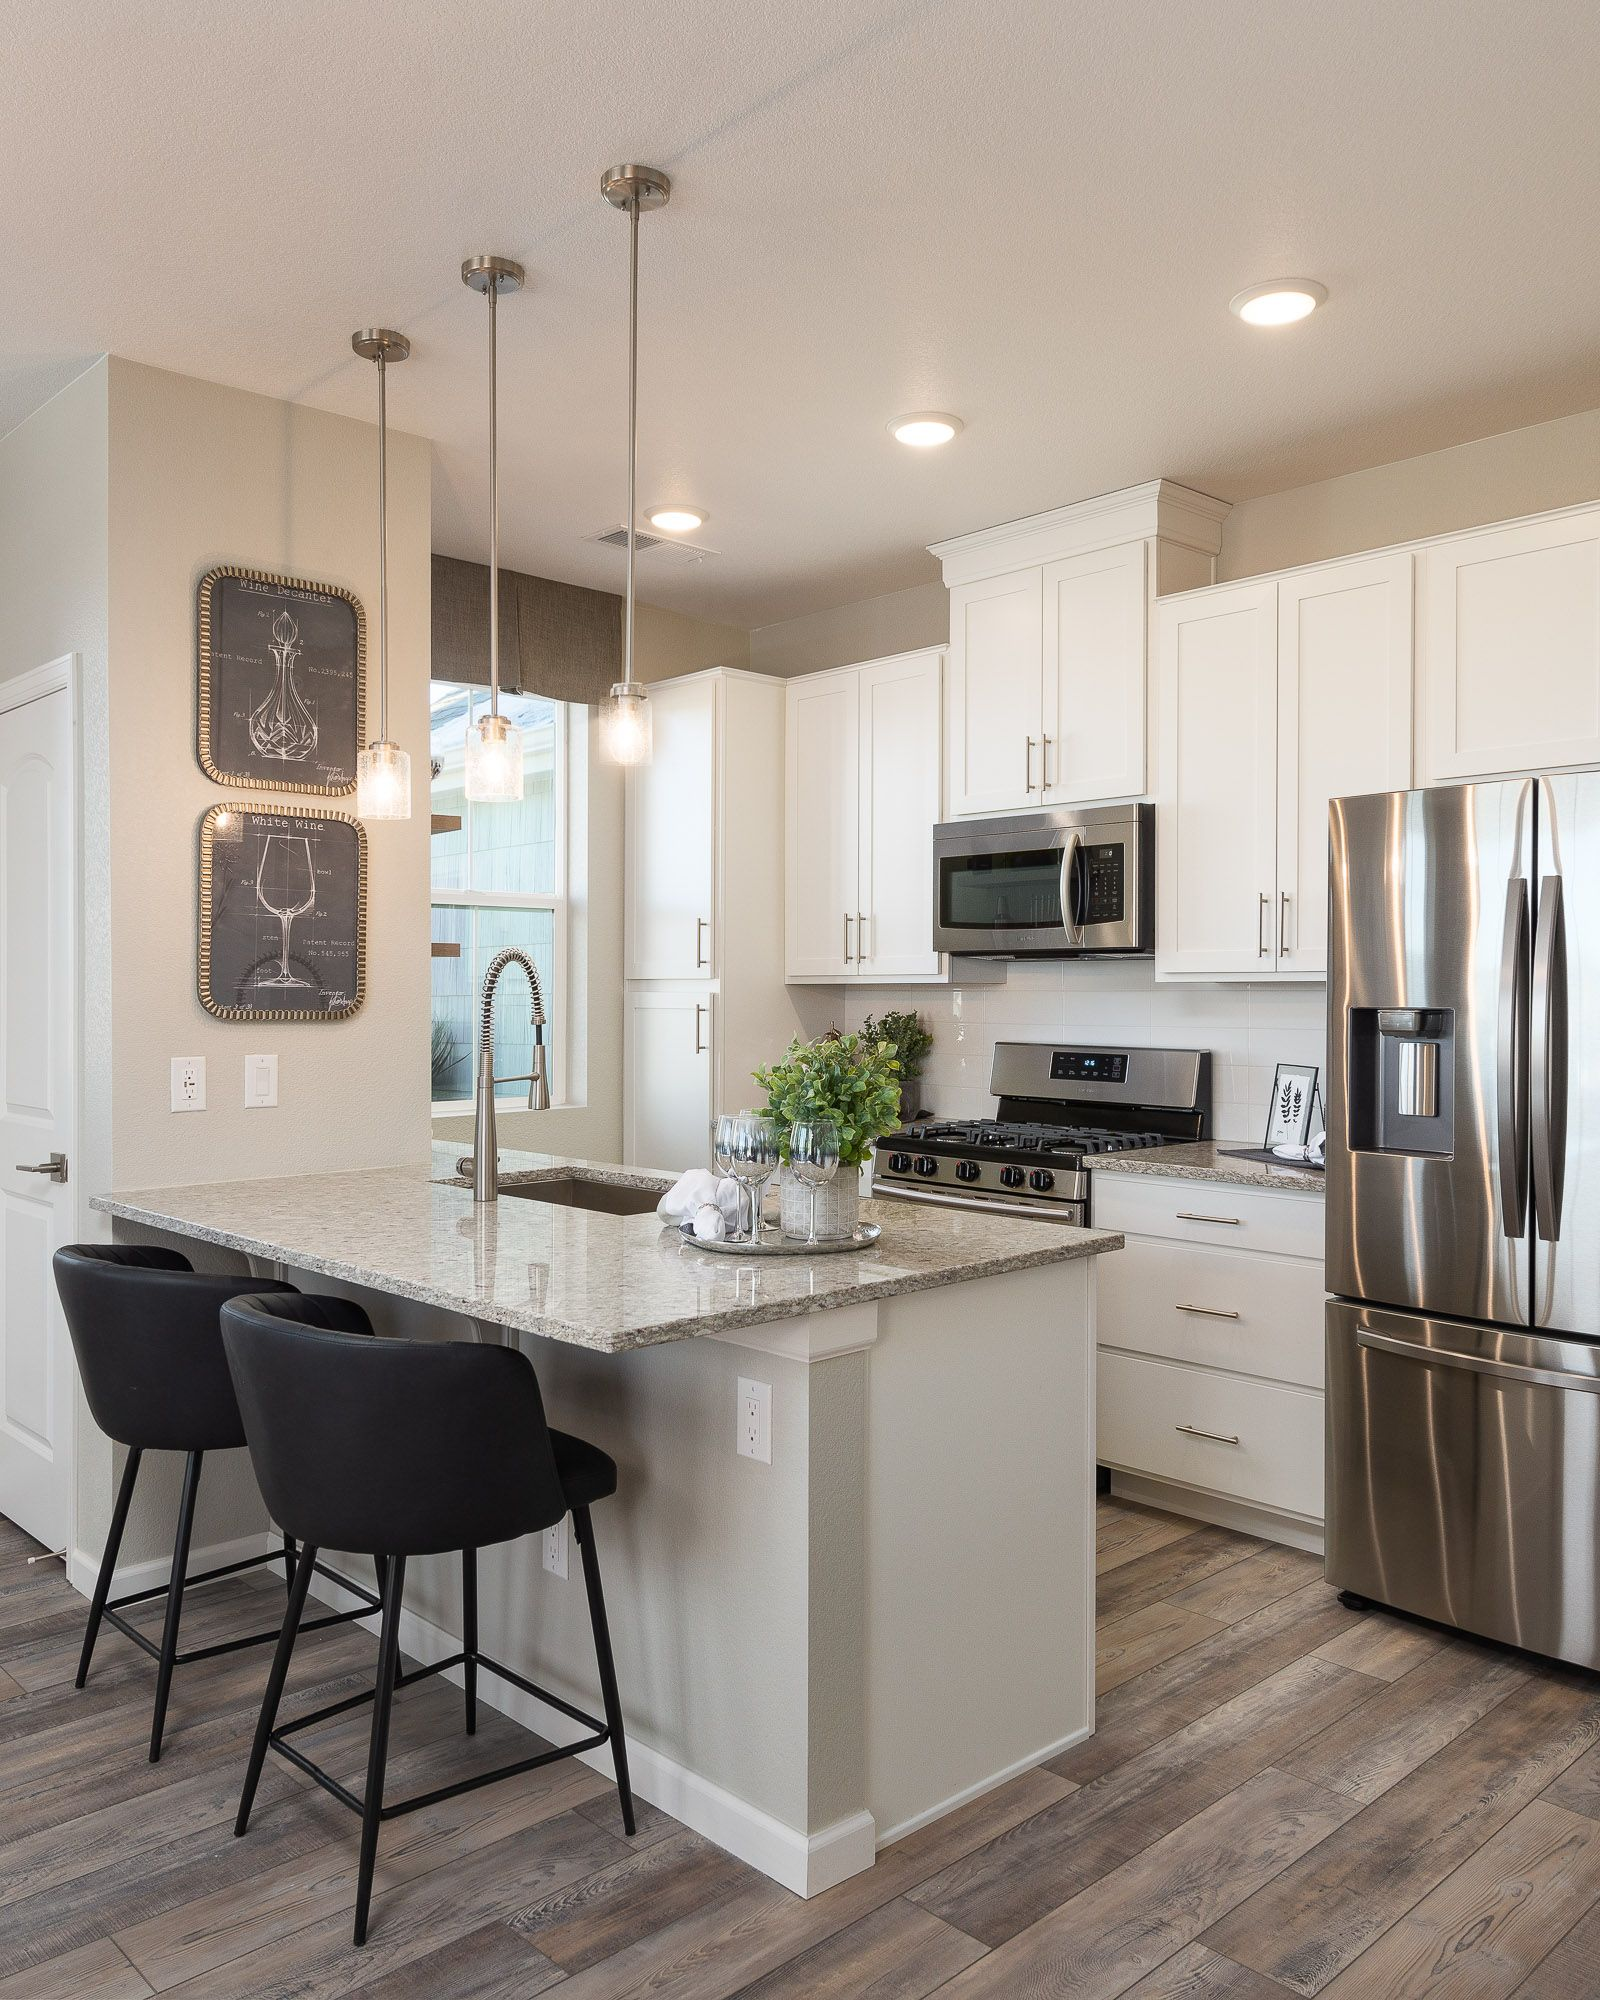 Kitchen featured in the Aiden By Lokal Homes in Denver, CO